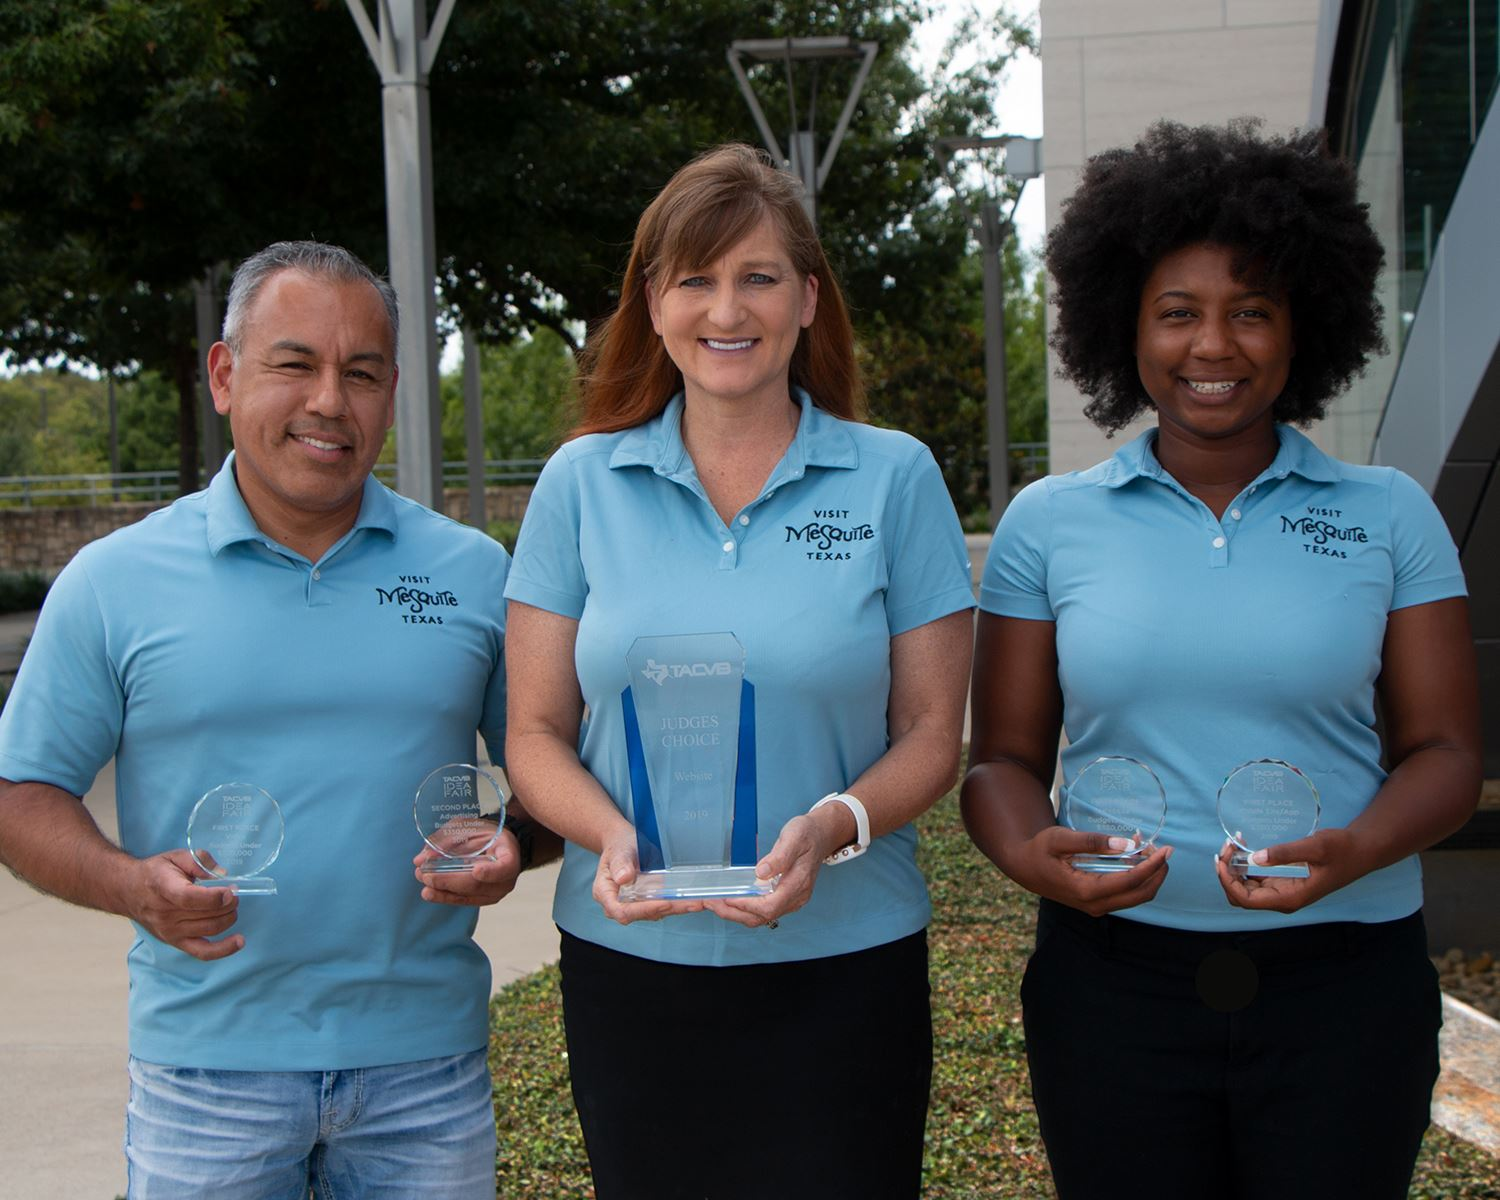 2019 CVB Awards - Sales Coord Alberto Rivera - Mgr Jessica McClellan - Marketing Coord Amber Patters